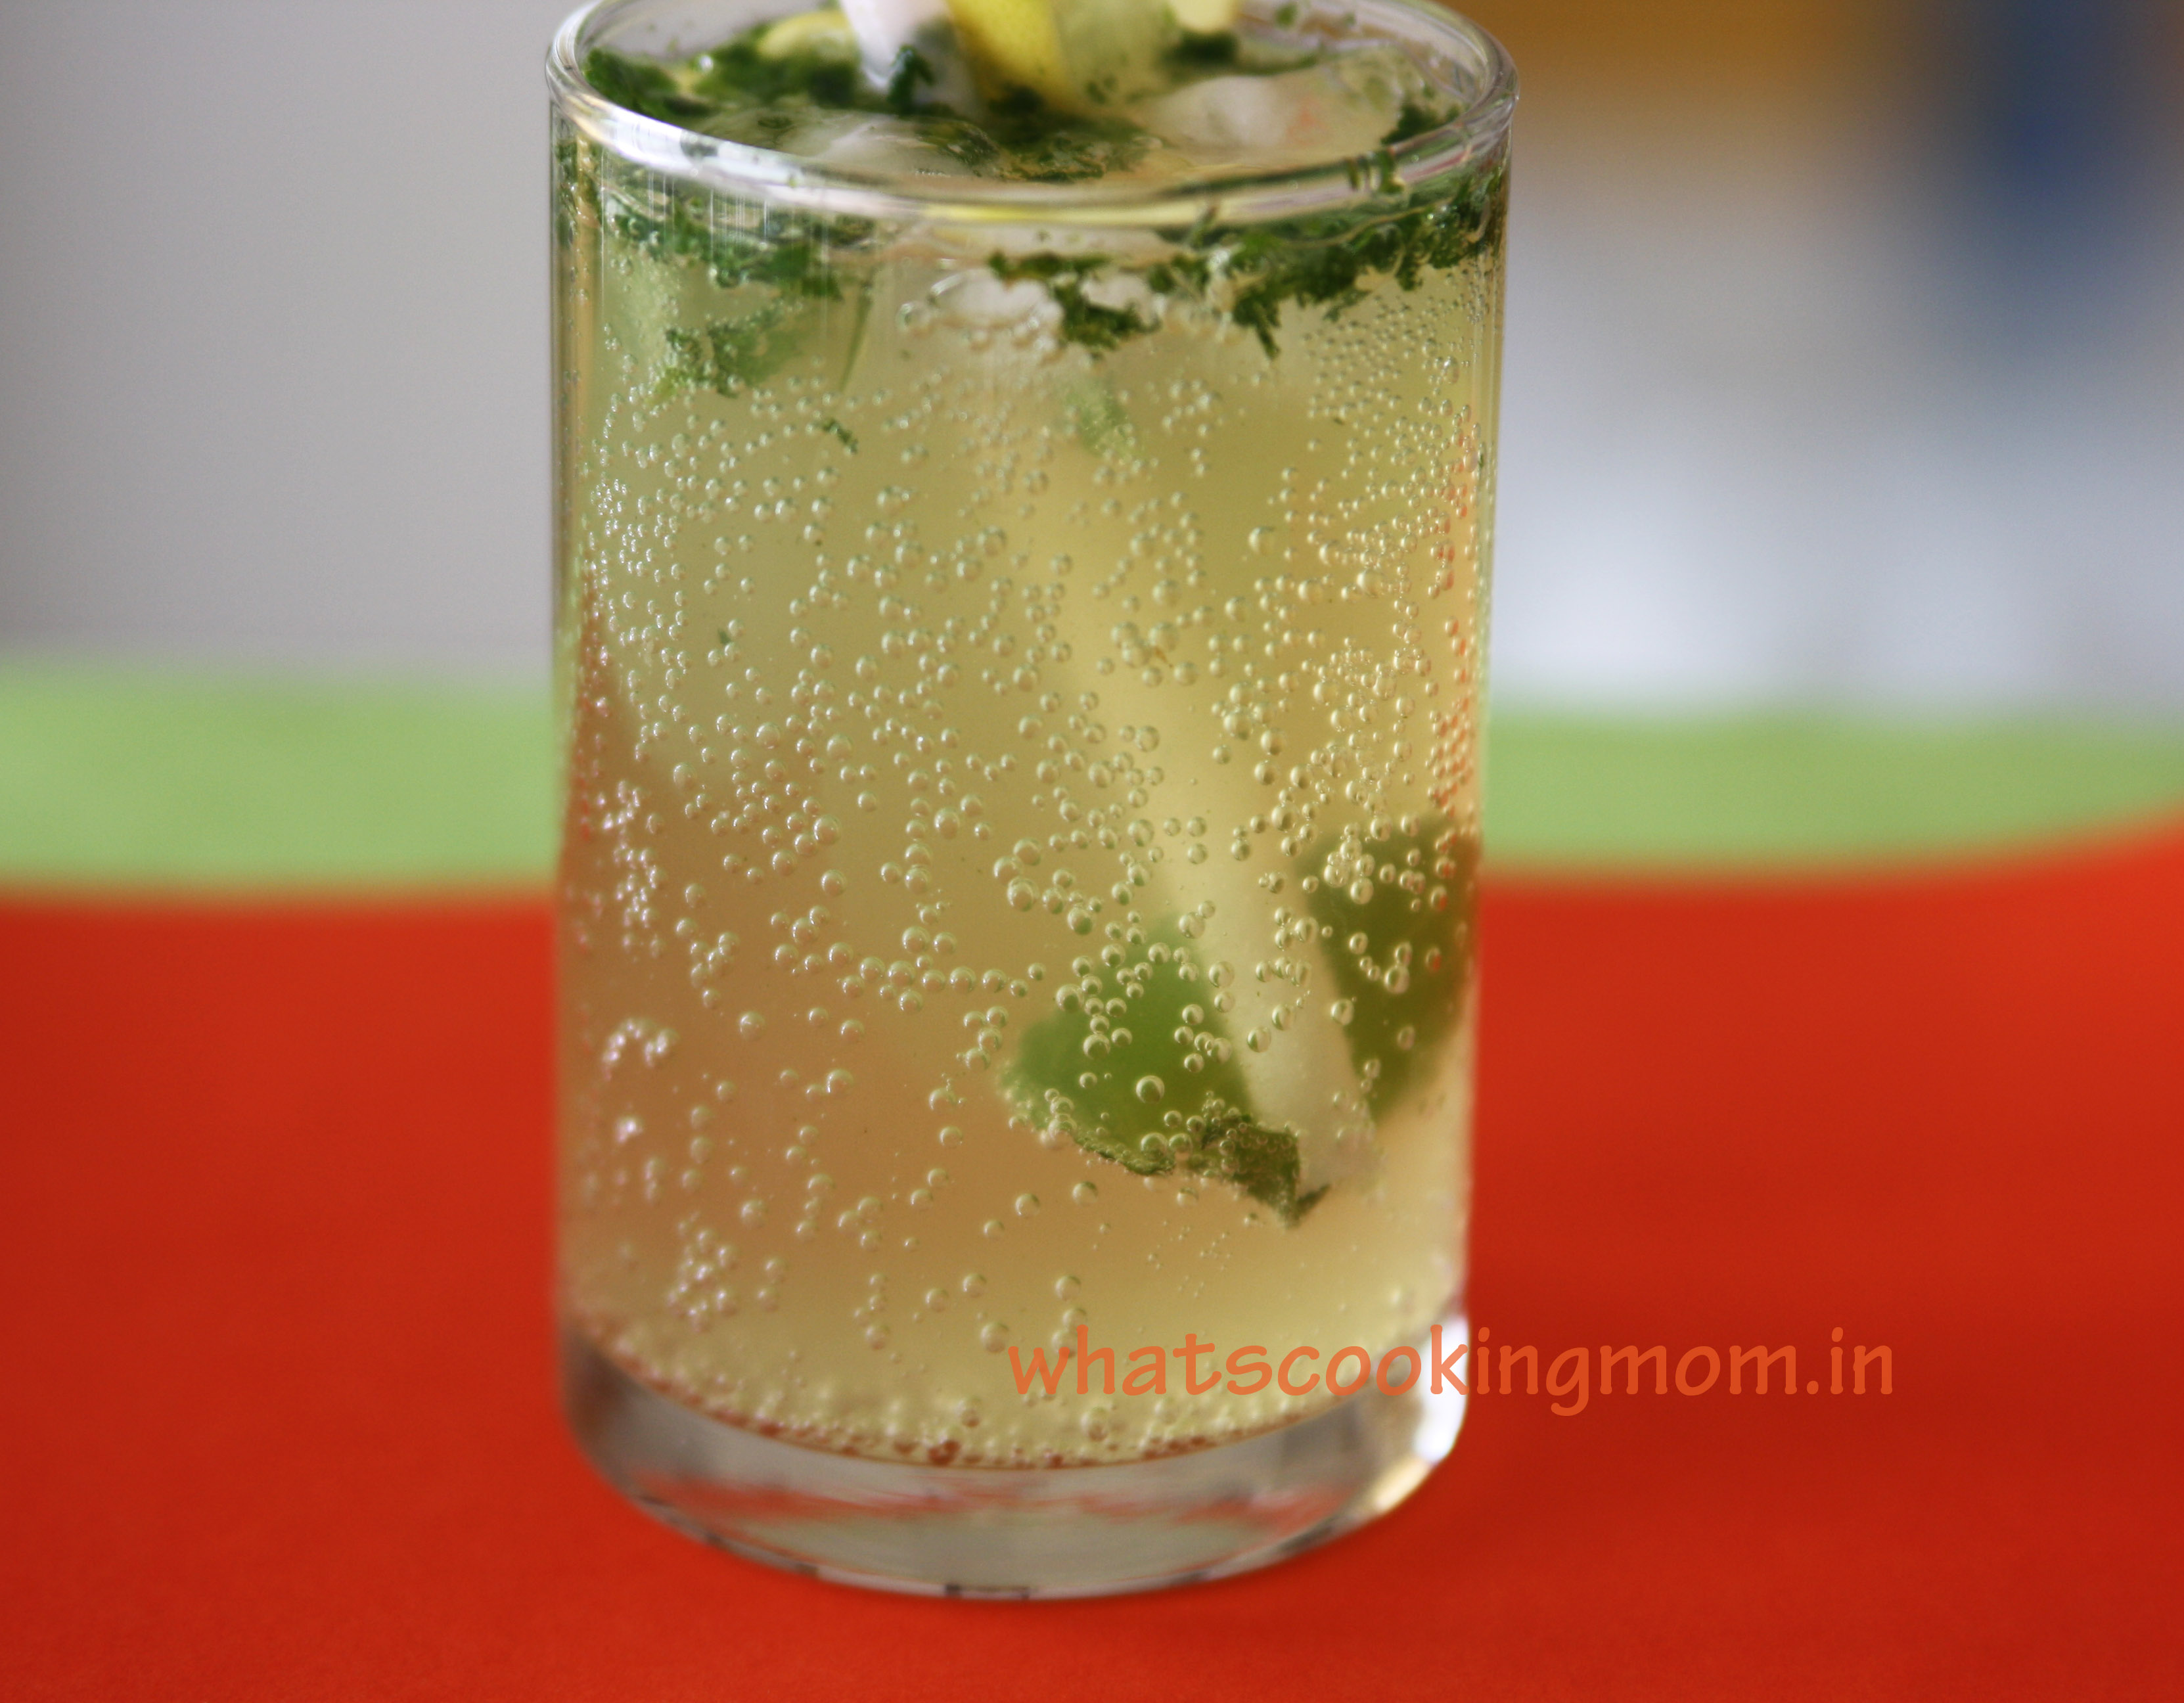 Discussion on this topic: Minty Non-Alcoholic Mojito, minty-non-alcoholic-mojito/